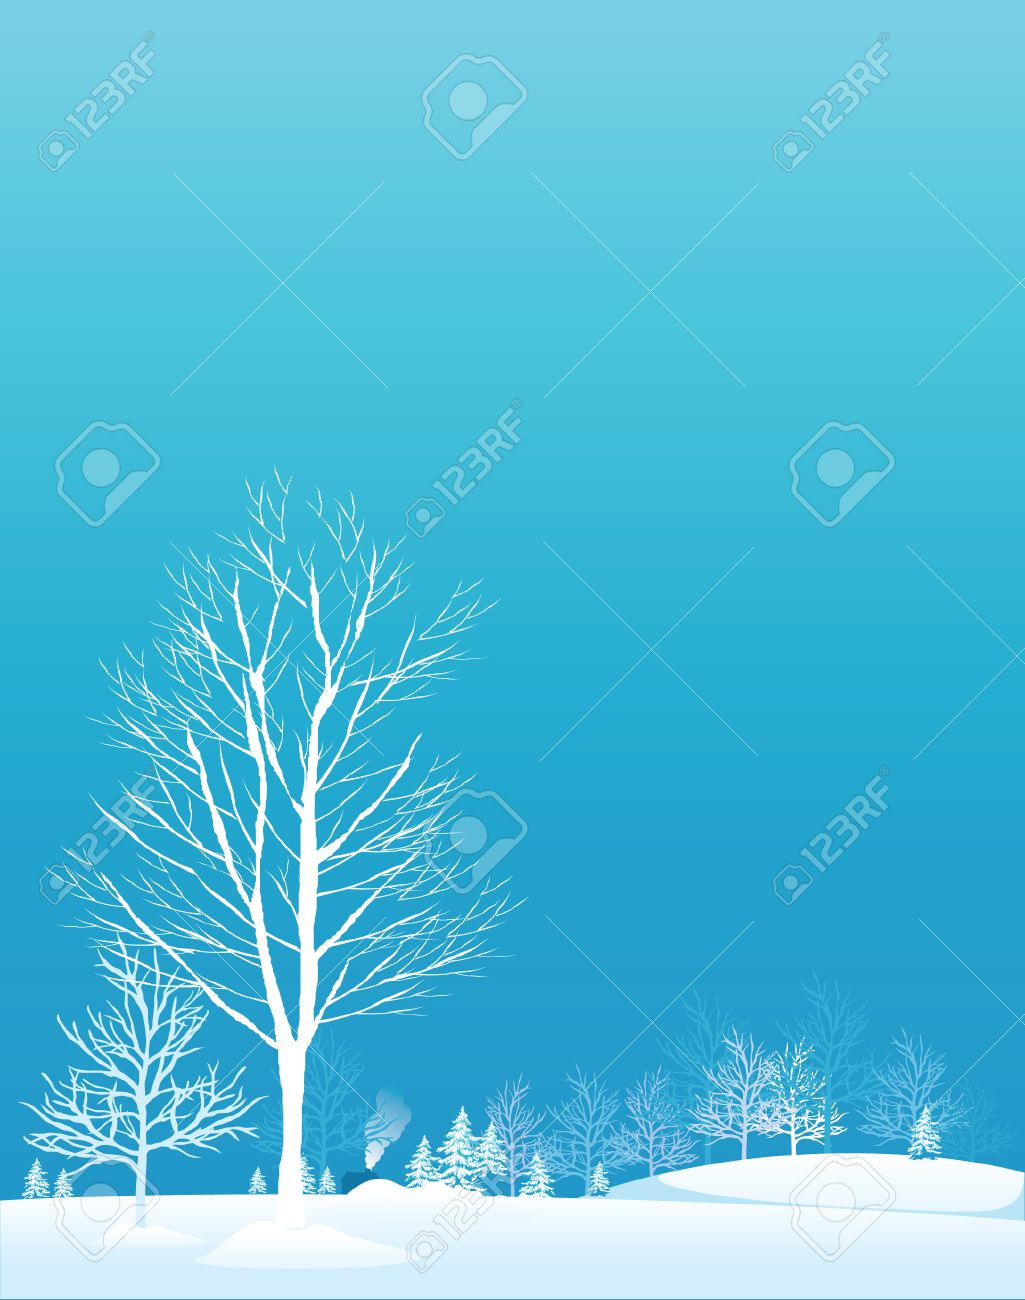 Winter trees.Vector decorative illustration for graphic design. Stock Vector - 4107074